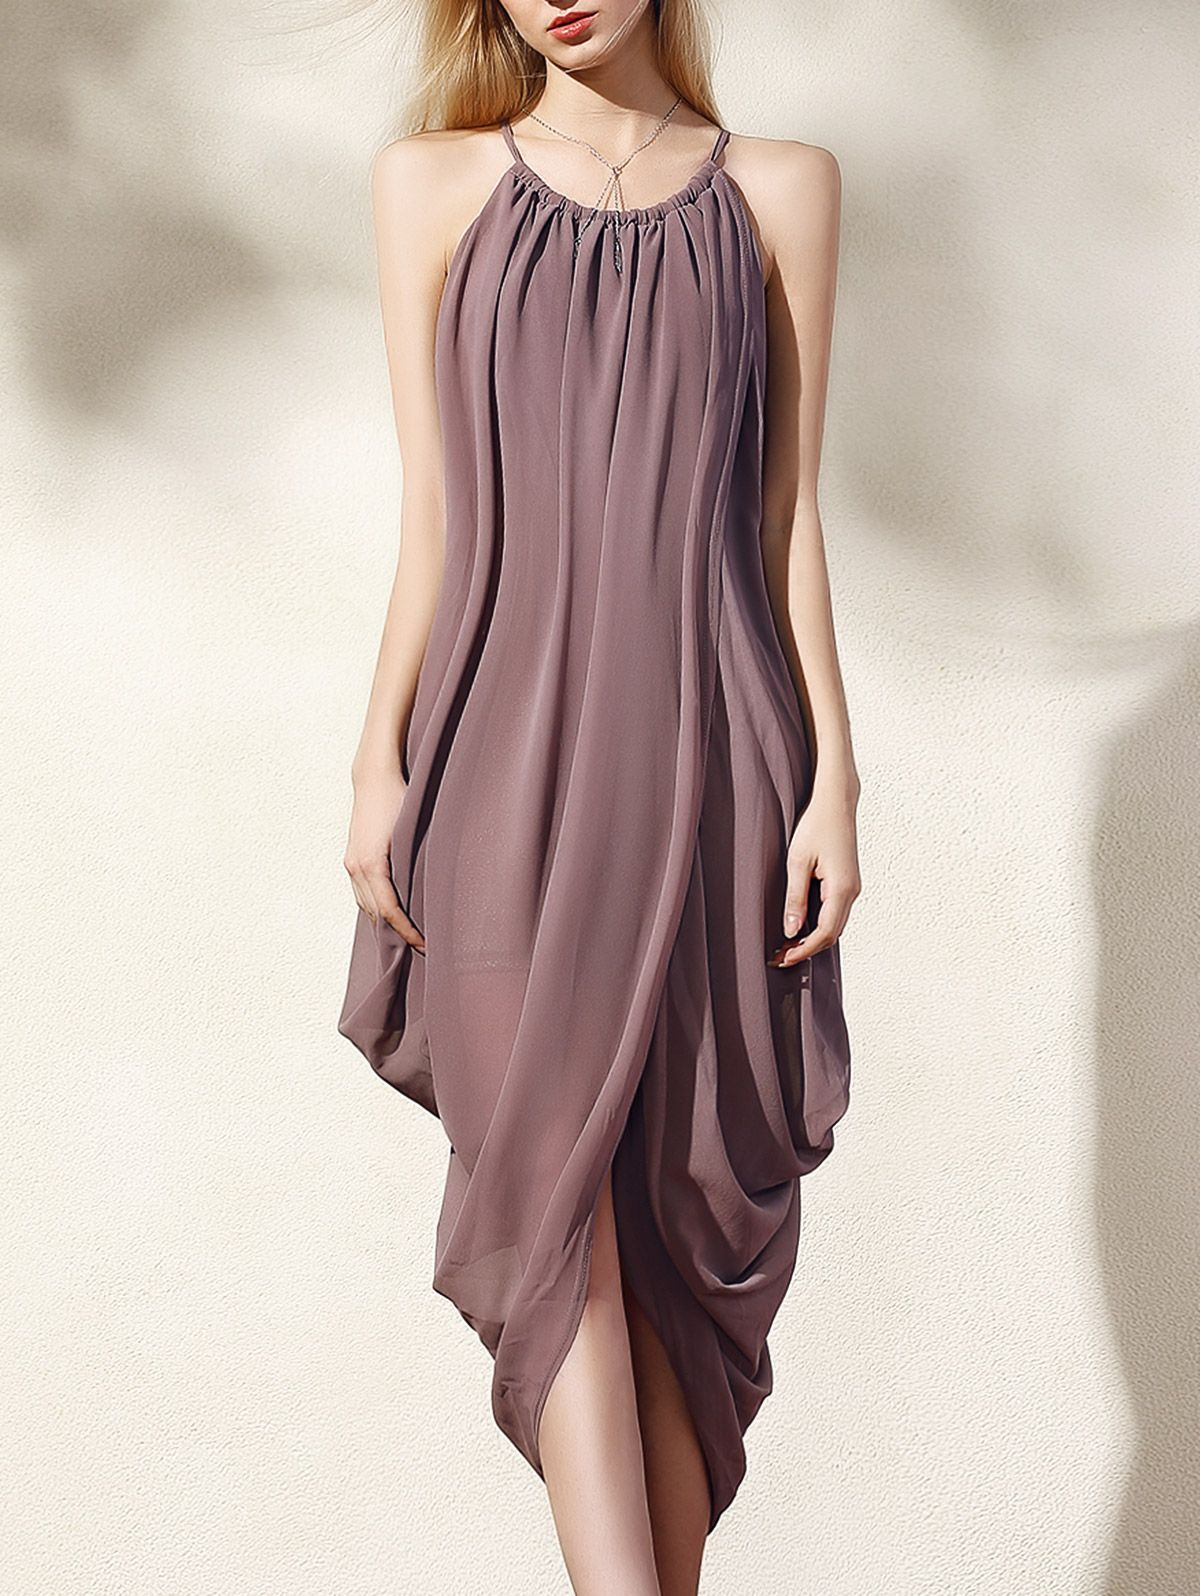 28++ Loose fitting dress information